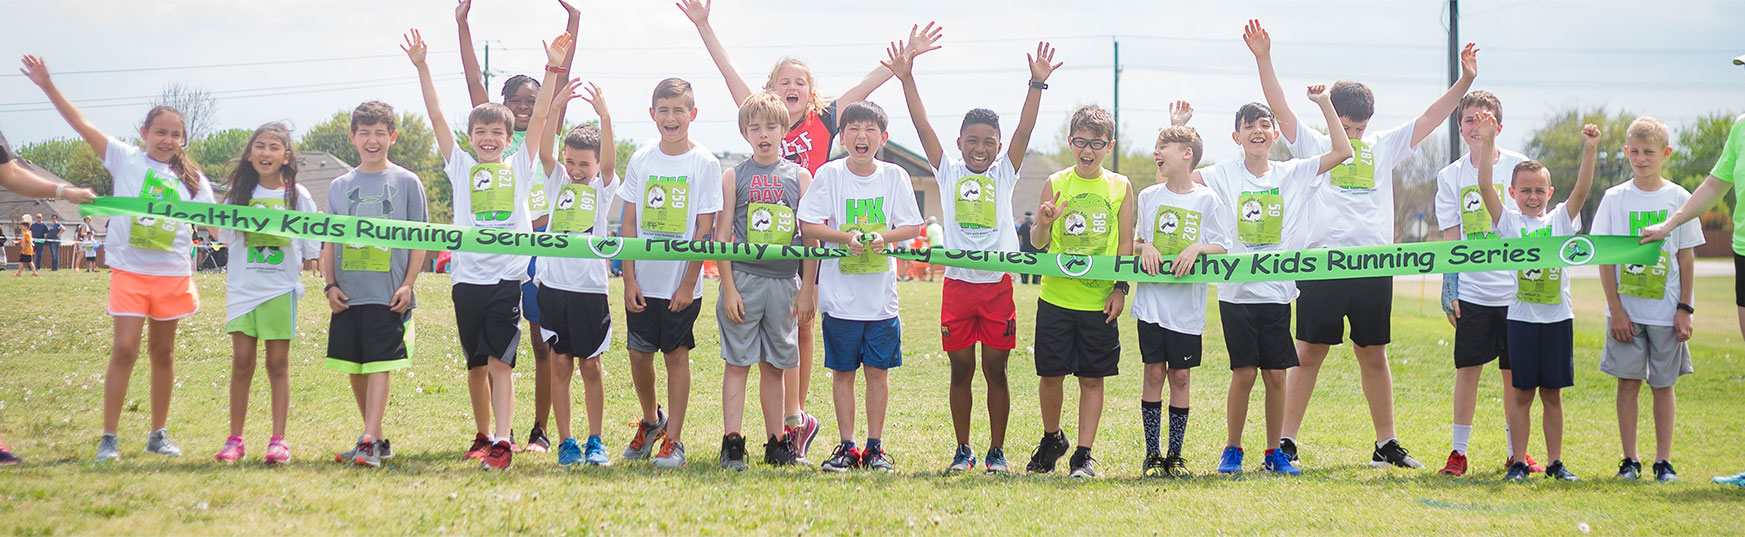 Find a Race - Healthy Kids Running Series